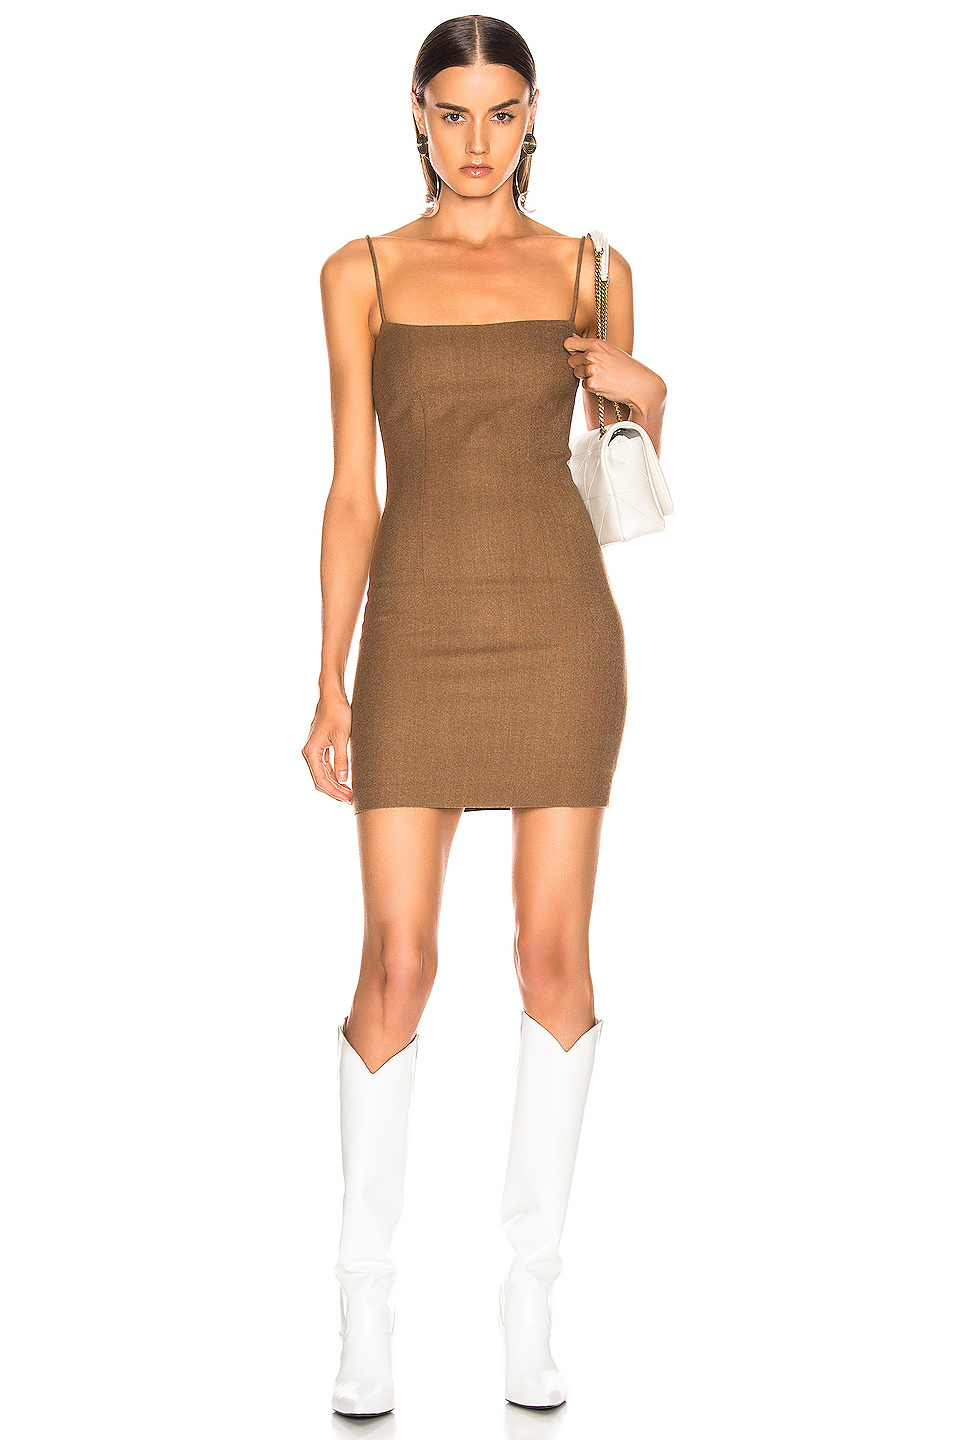 Wool Mini Dress by Zeynep Arcay, available on fwrd.com for $1450 Kendall Jenner Dress Exact Product